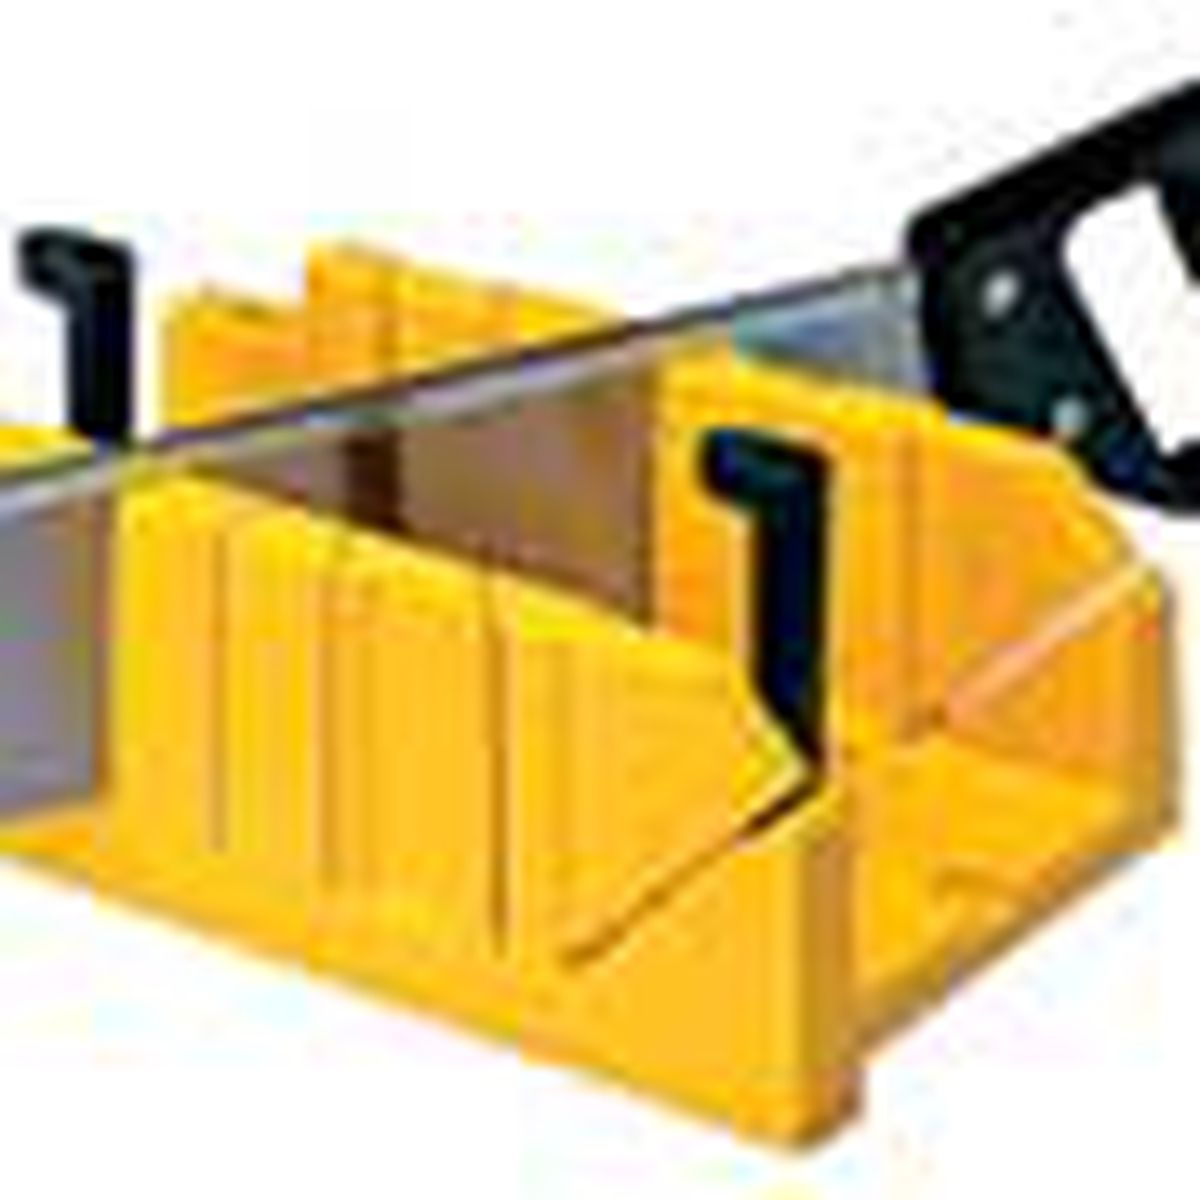 miterbox with saw